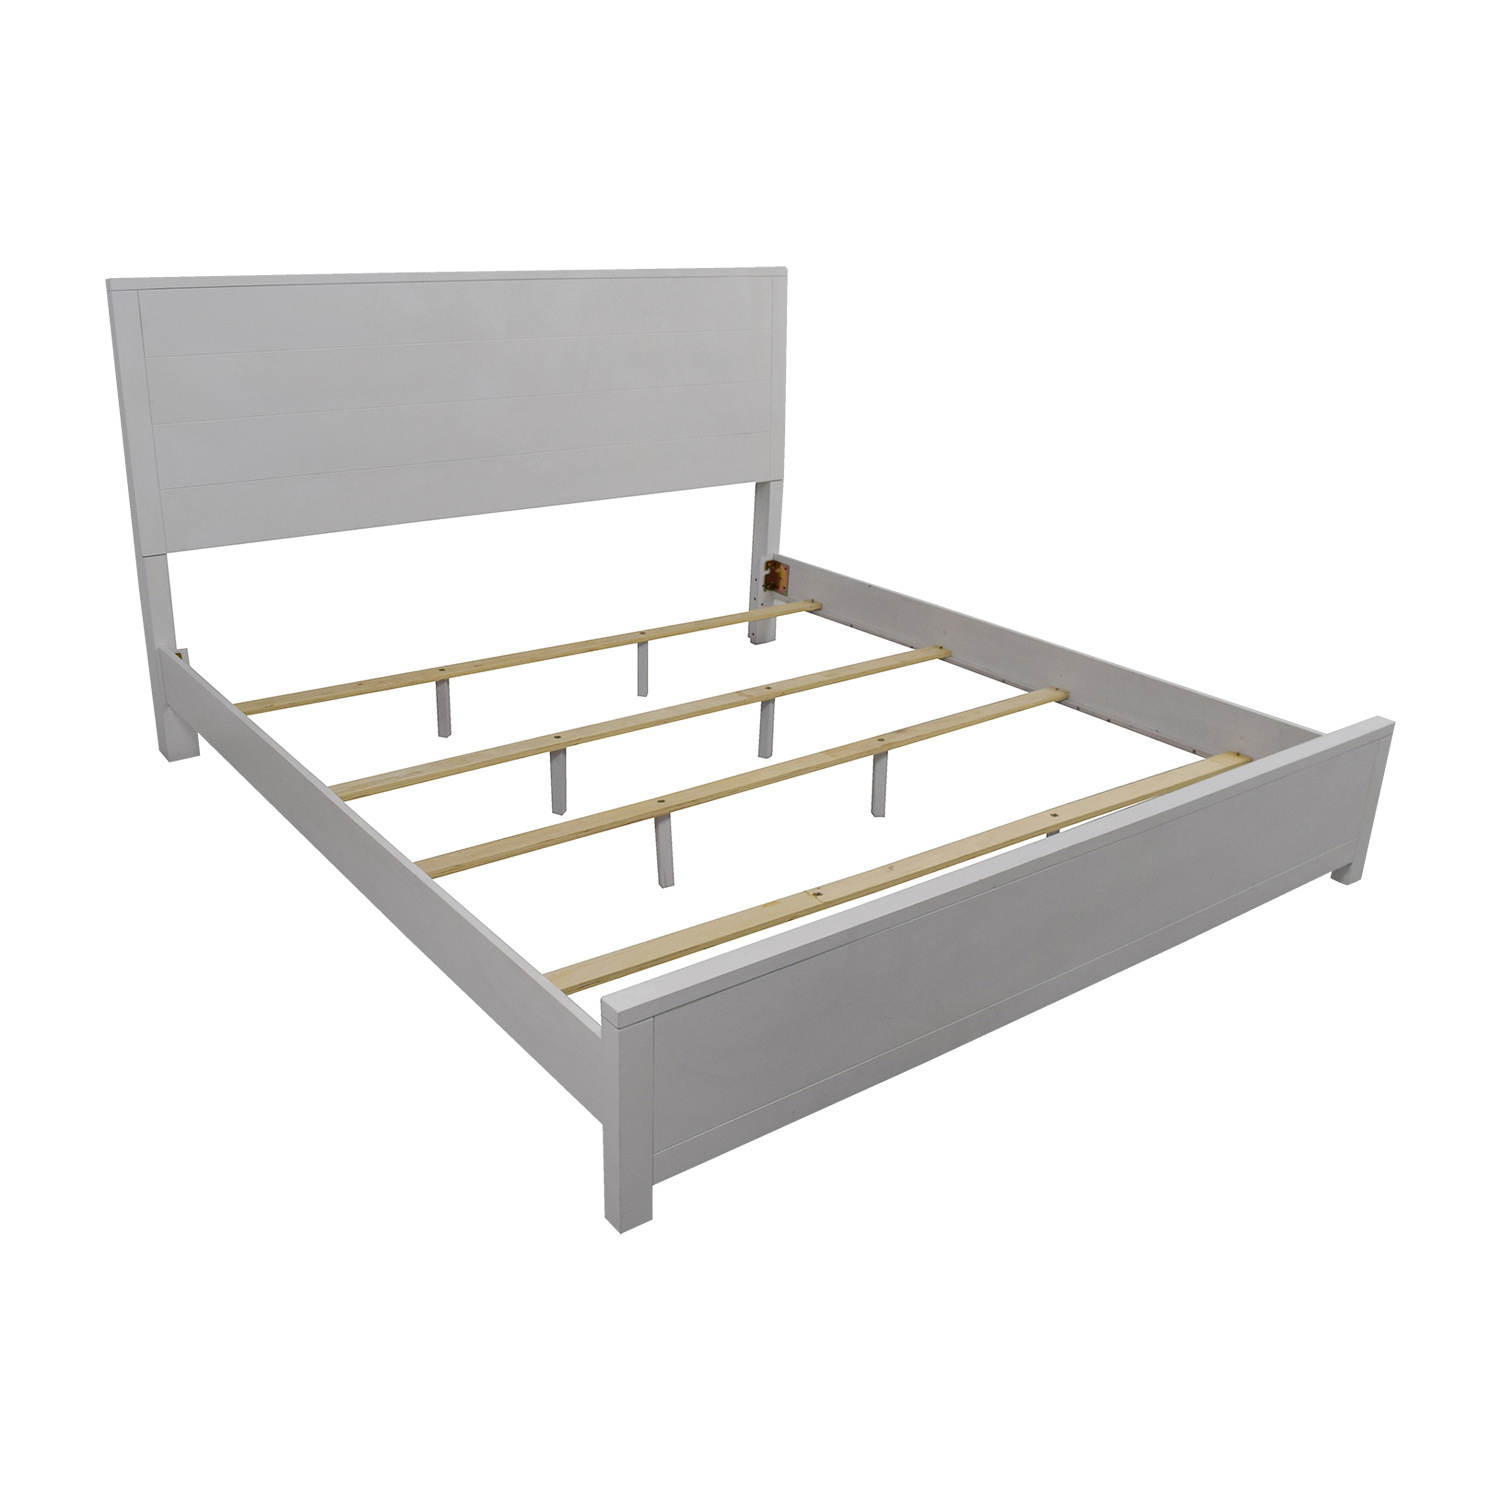 90 off macy s macy s white king bedframe beds 10236 | macys white king bedframe second hand